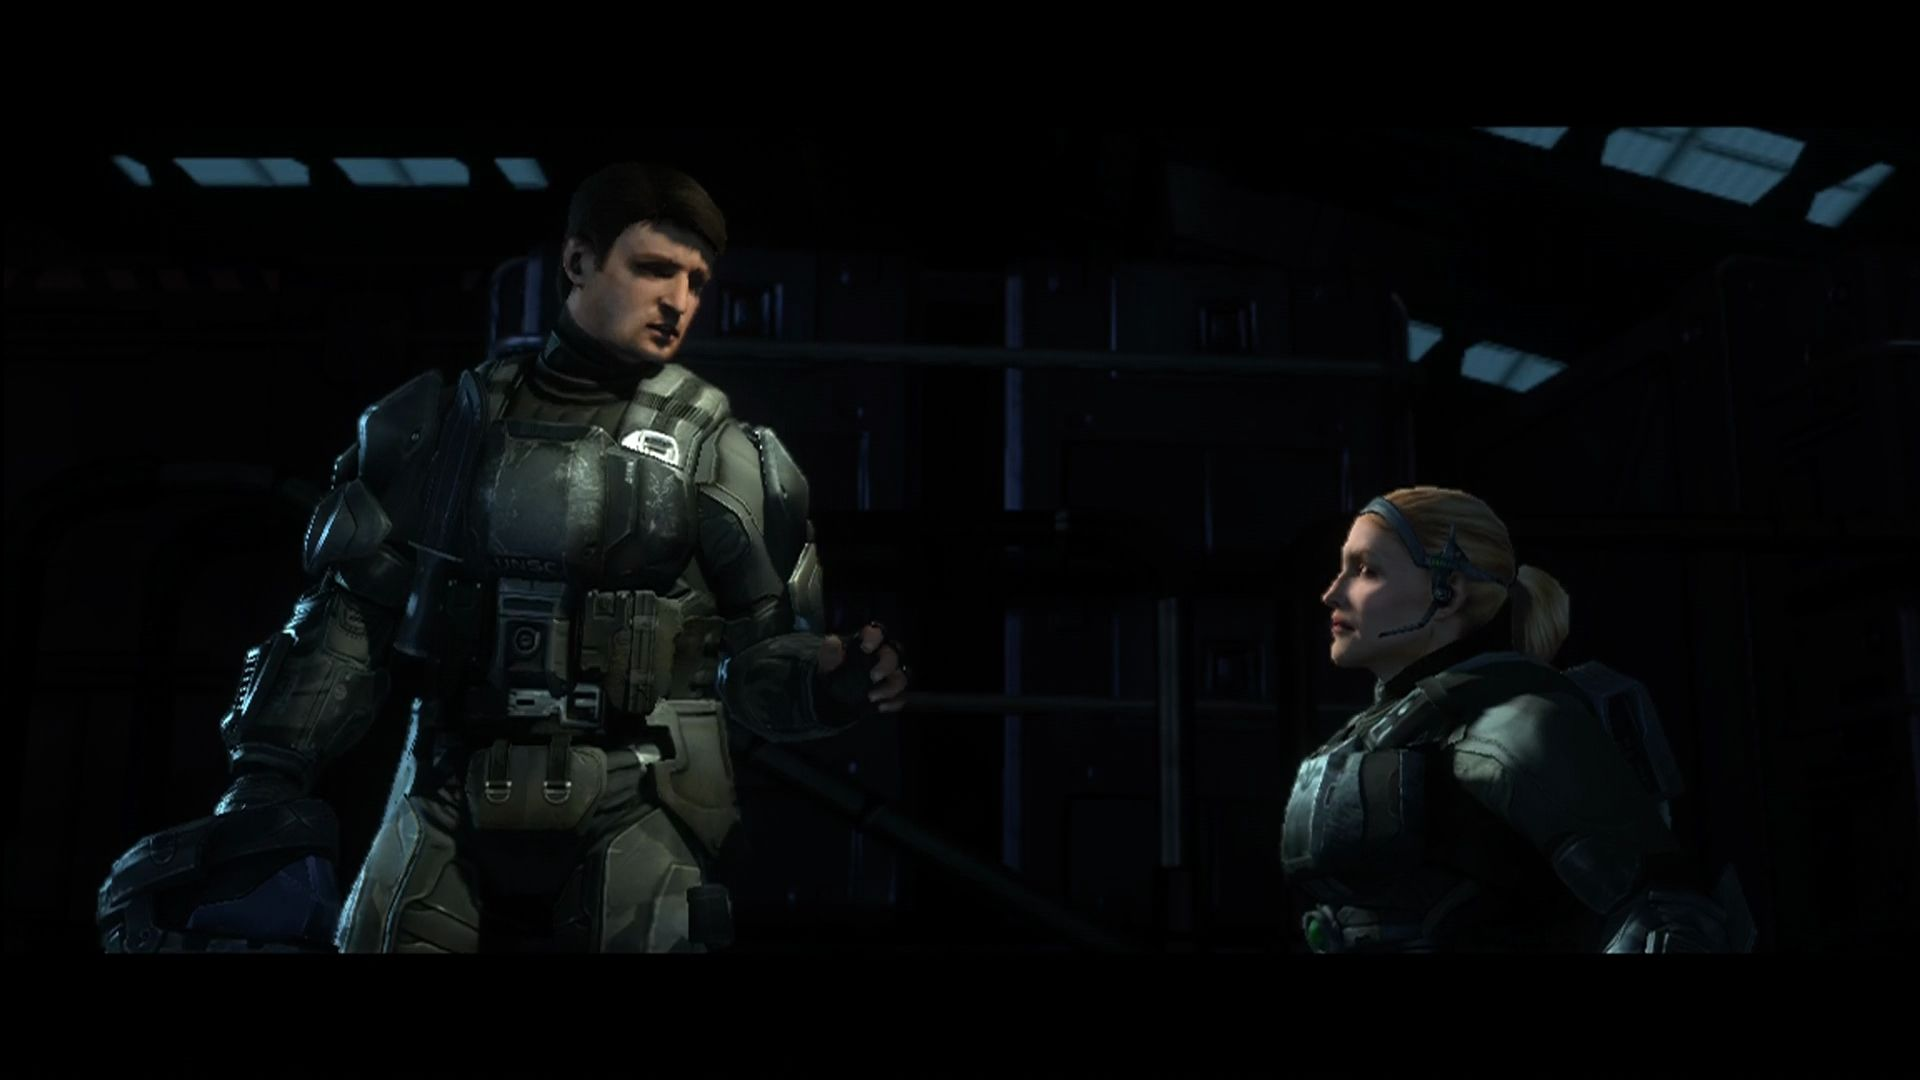 "Halo 3: ODST Xbox 360 <moby developer=""Tricia Helfer"">Tricia Helfer</moby> as the intelligence officer along for the ride."